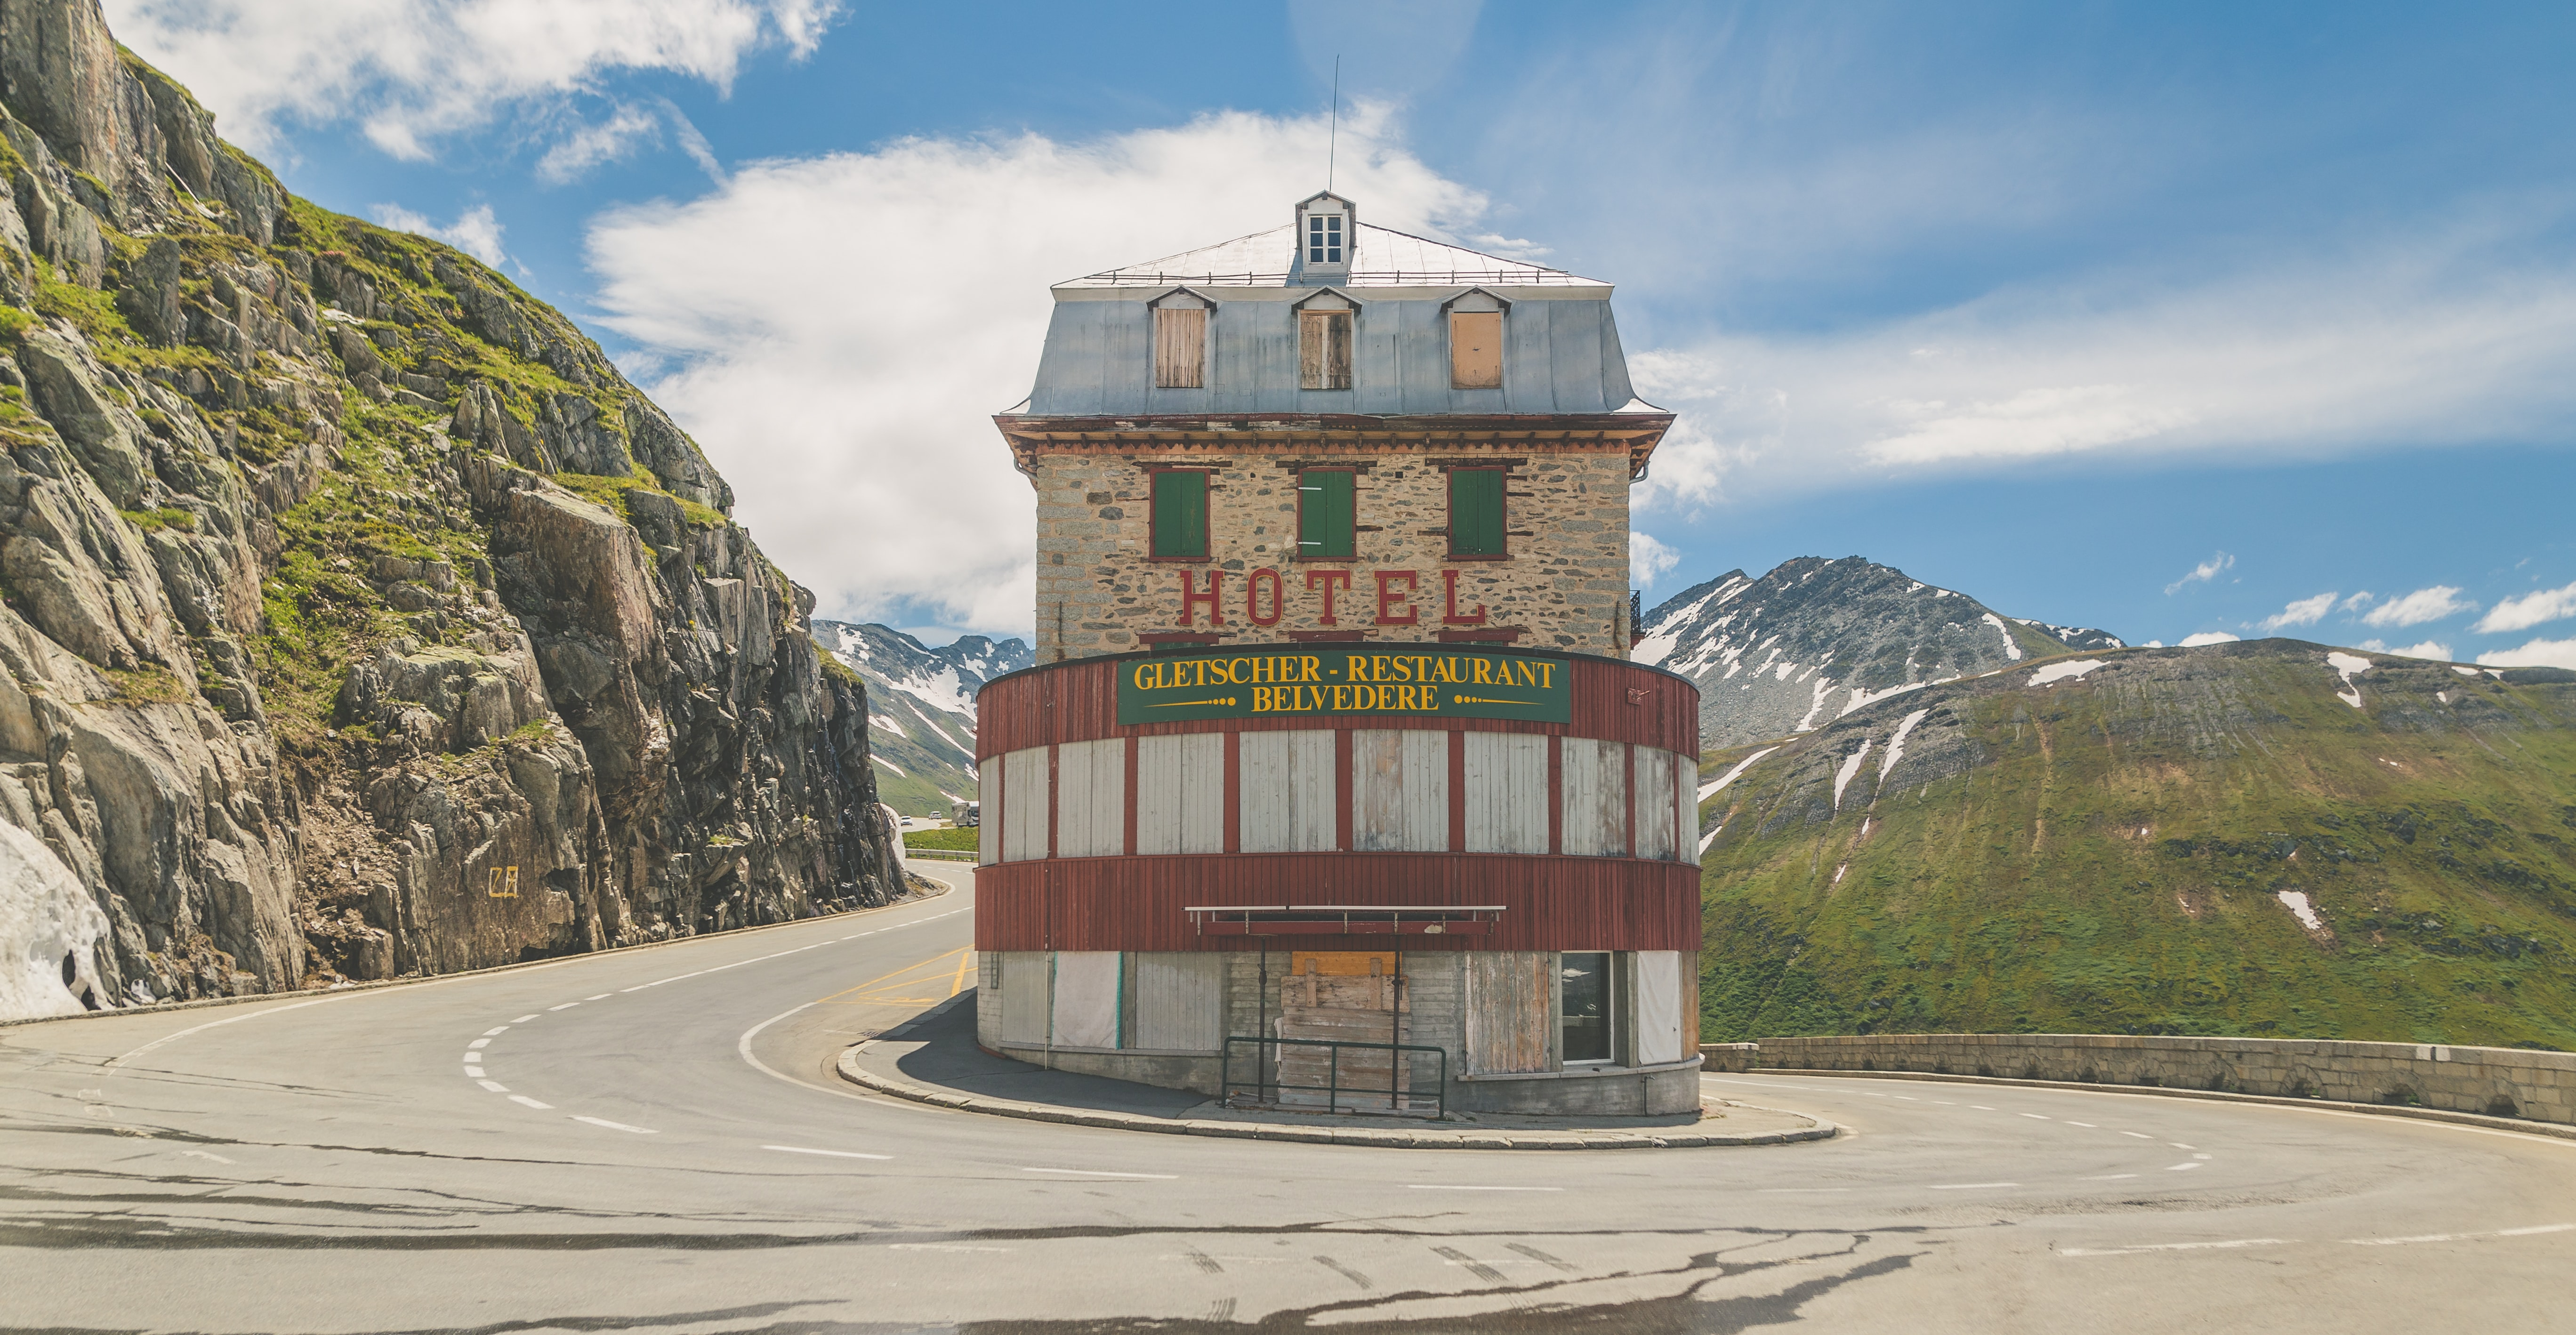 Hotel between road near green mountain at daytime